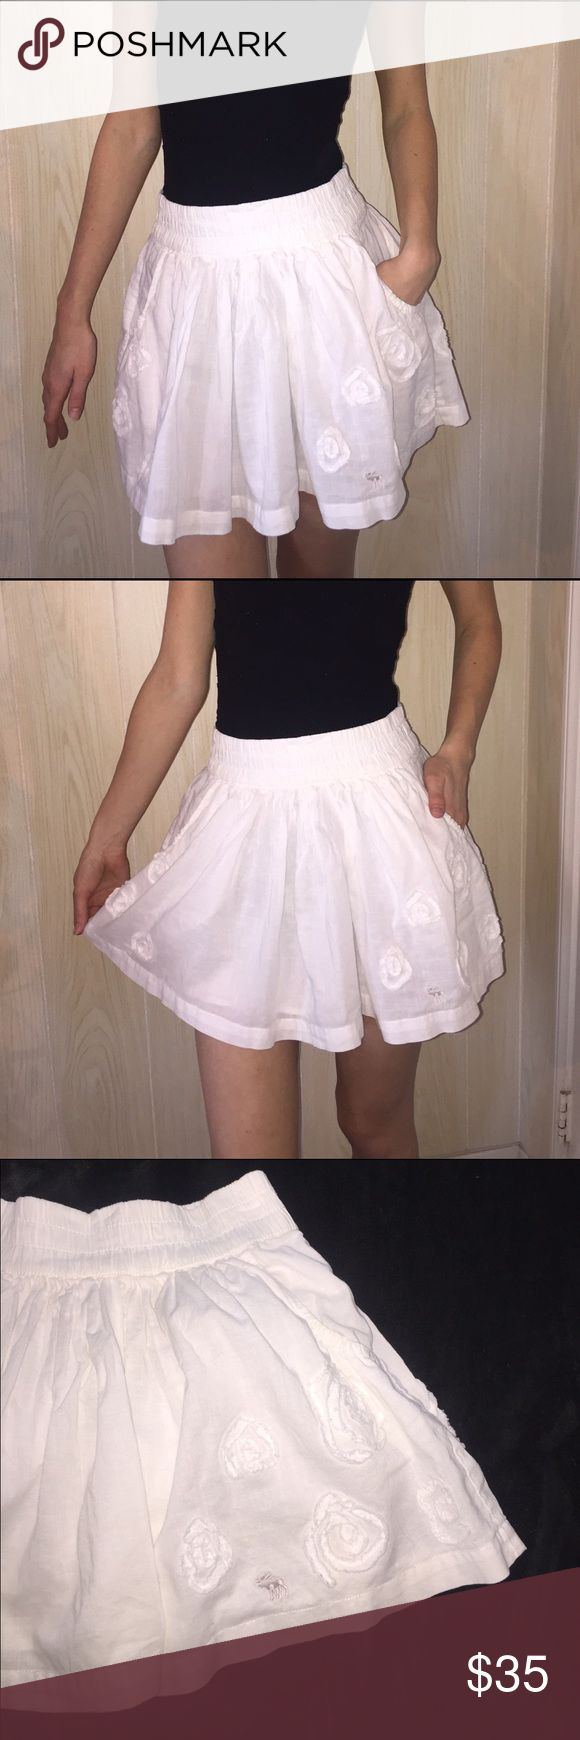 Brand-new Abercrombie and Fitch white skirt Brand-new Abercrombie and Fitch white skirt. Size small ❤️️ Abercrombie & Fitch Skirts Mini